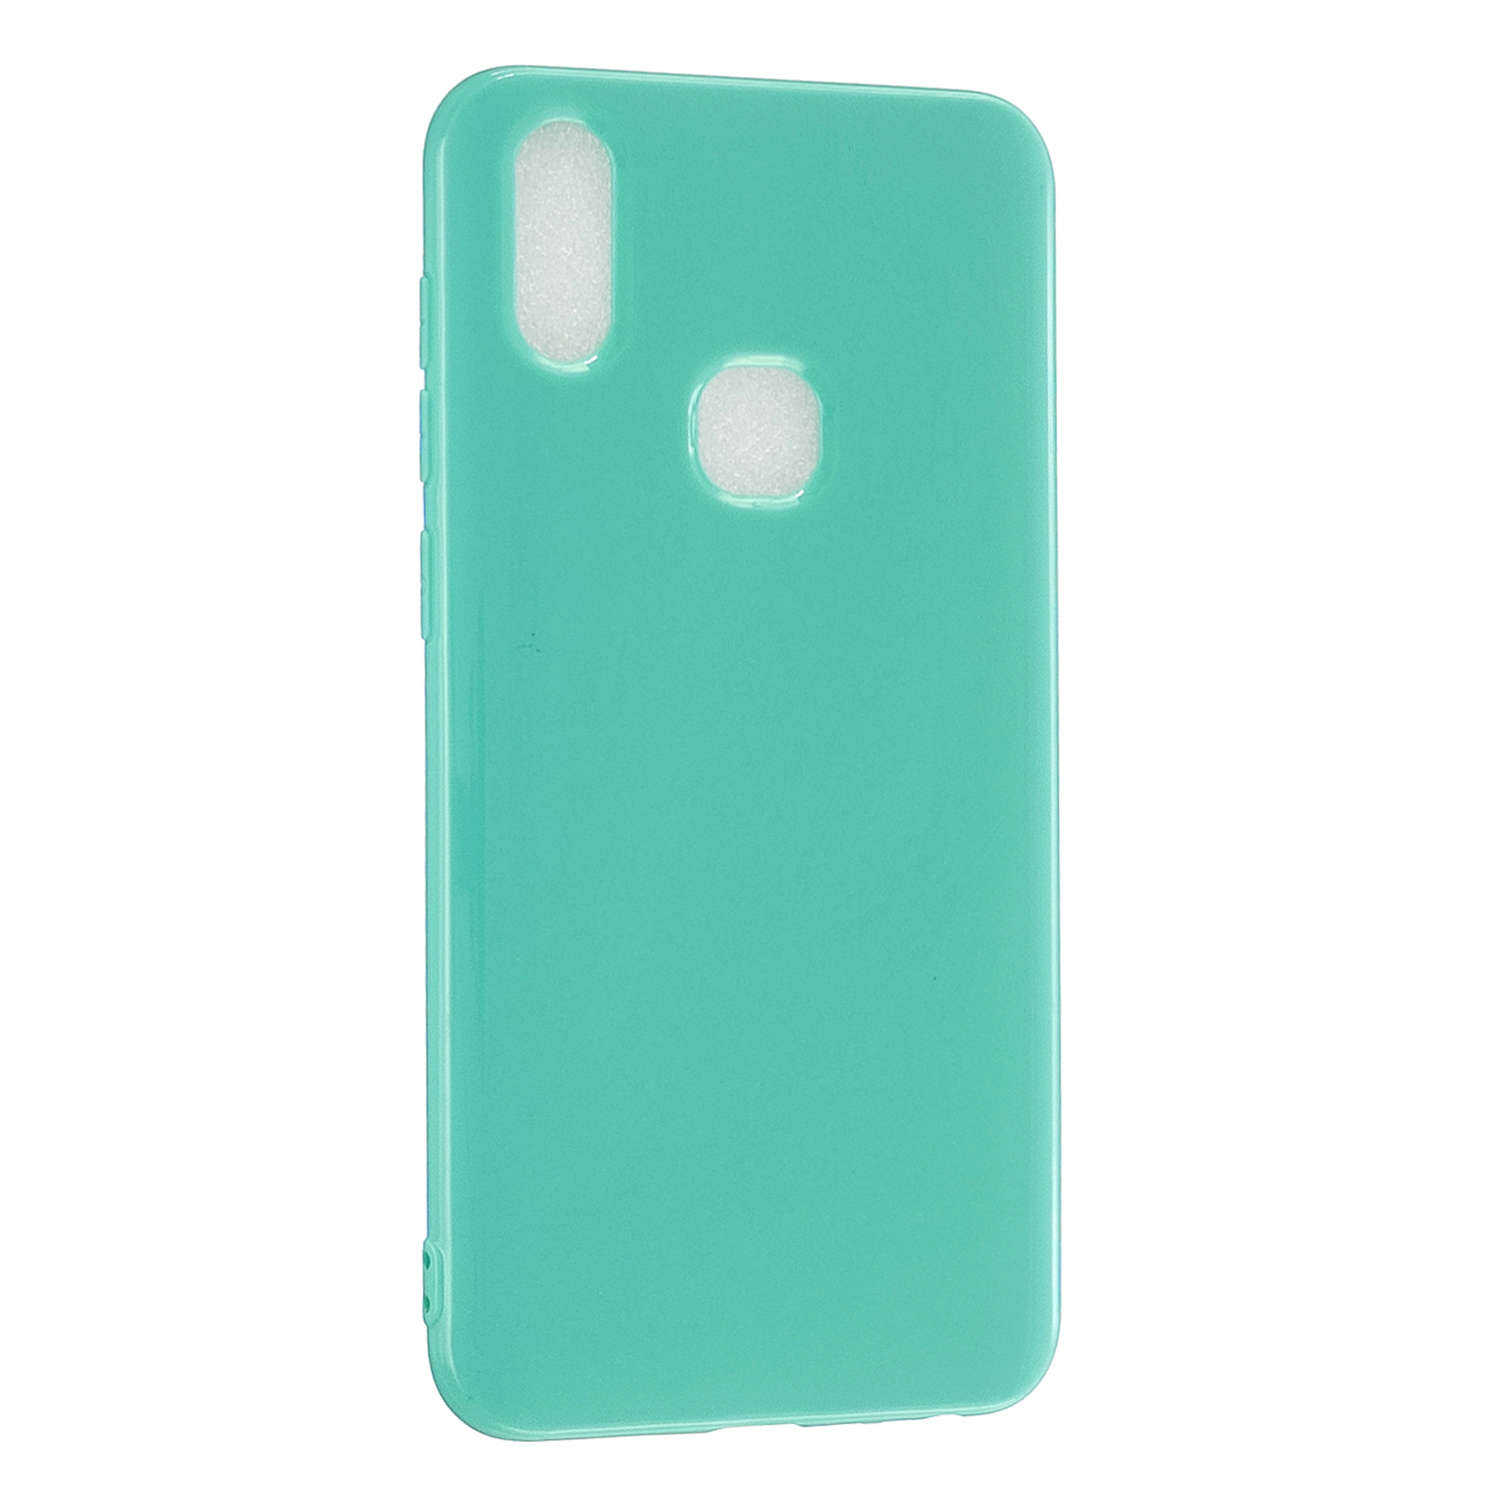 for VIVO Y17/Y3 / Y91/Y95/Y93 Thicken 2.0mm TPU Back Cover Cellphone Case Shell Light blue